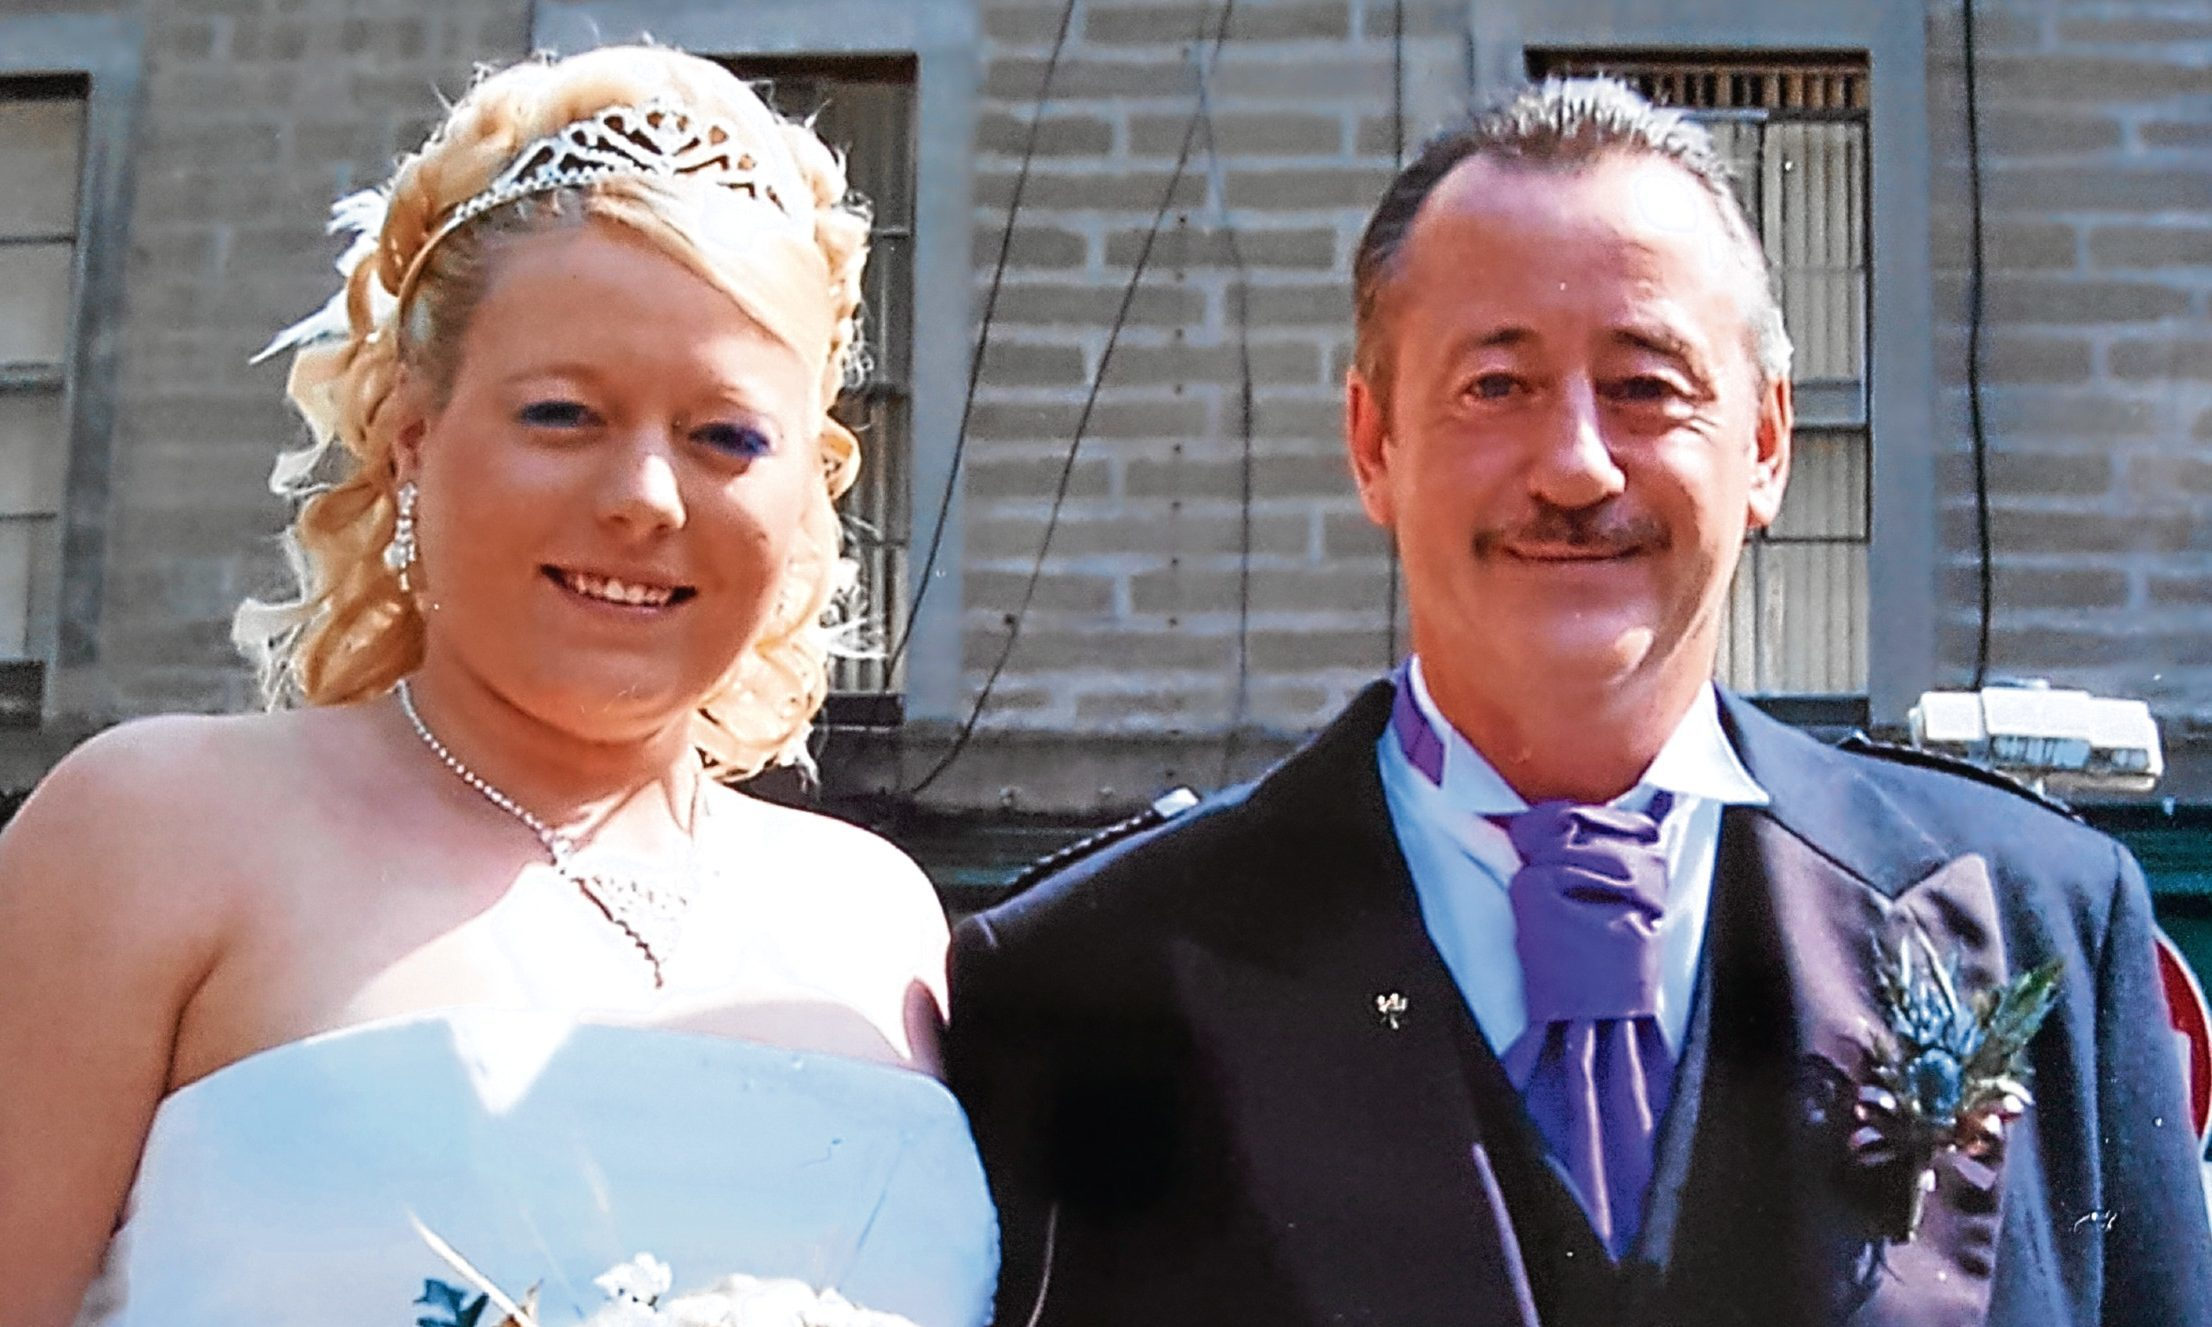 Samantha with dad Ian on her wedding day